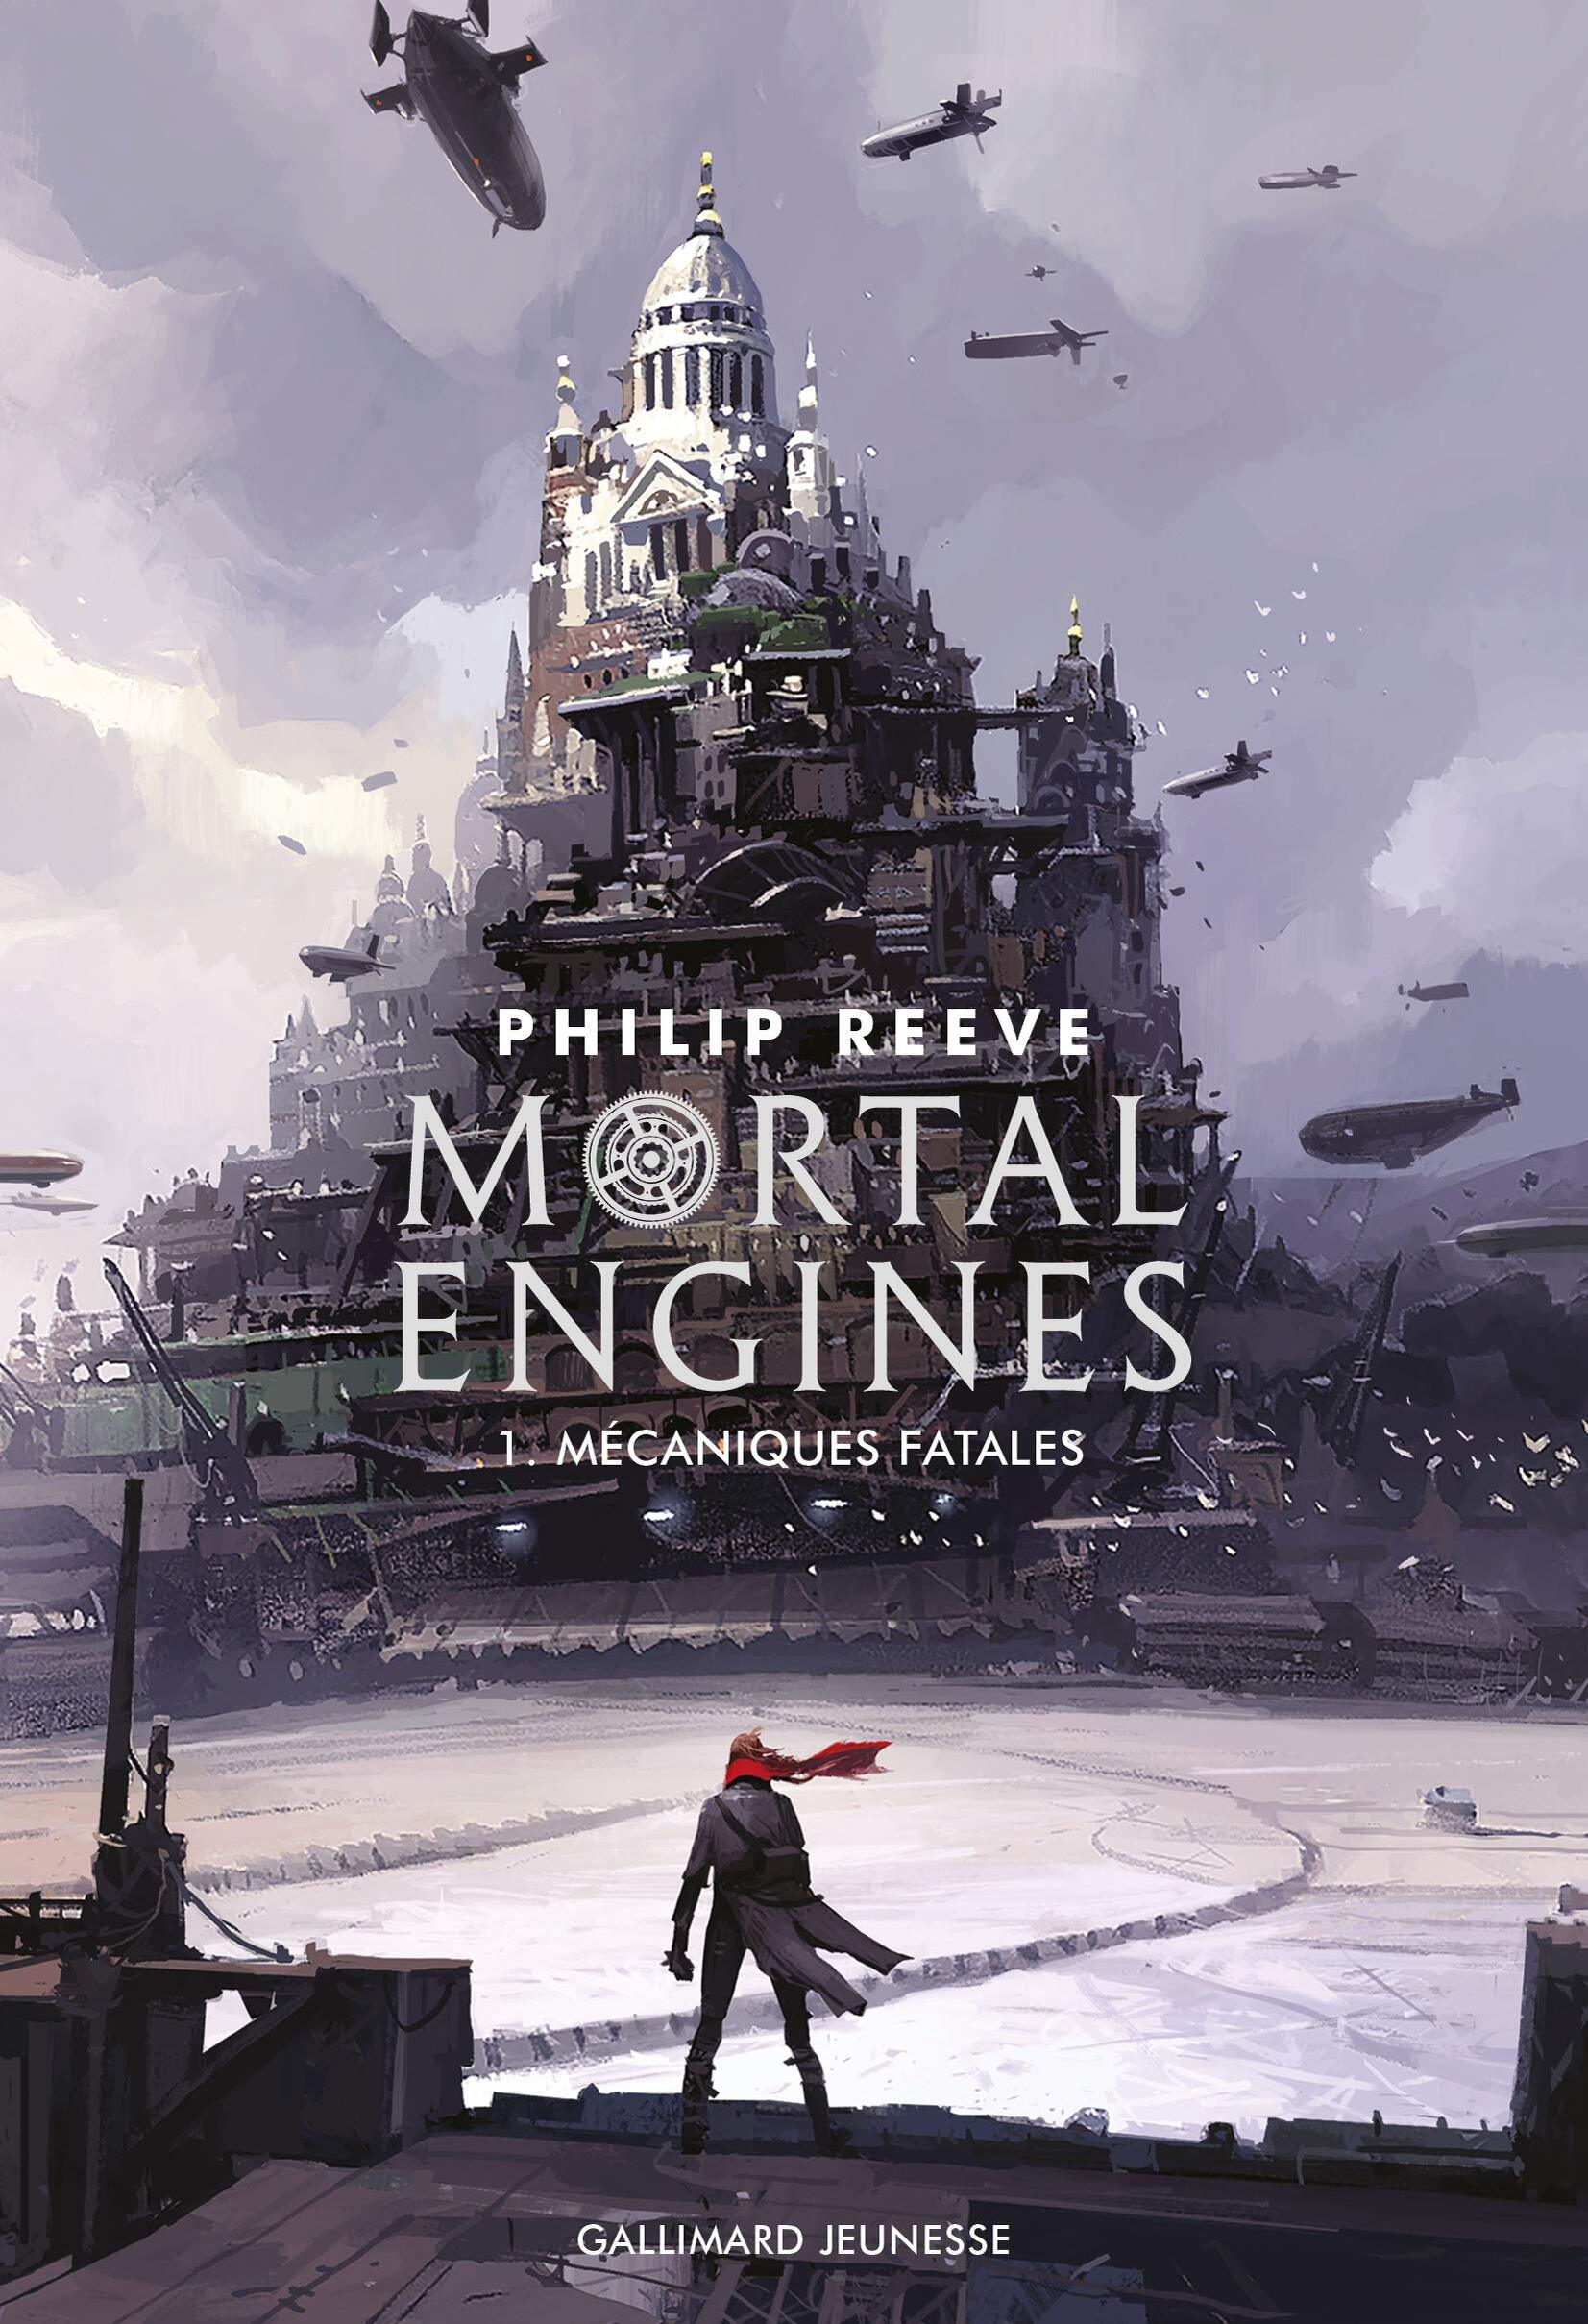 LECTURE COMMUNE D'OCTOBRE 2019 Mortal-engines-tome-1-mecaniques-fatales-1133698